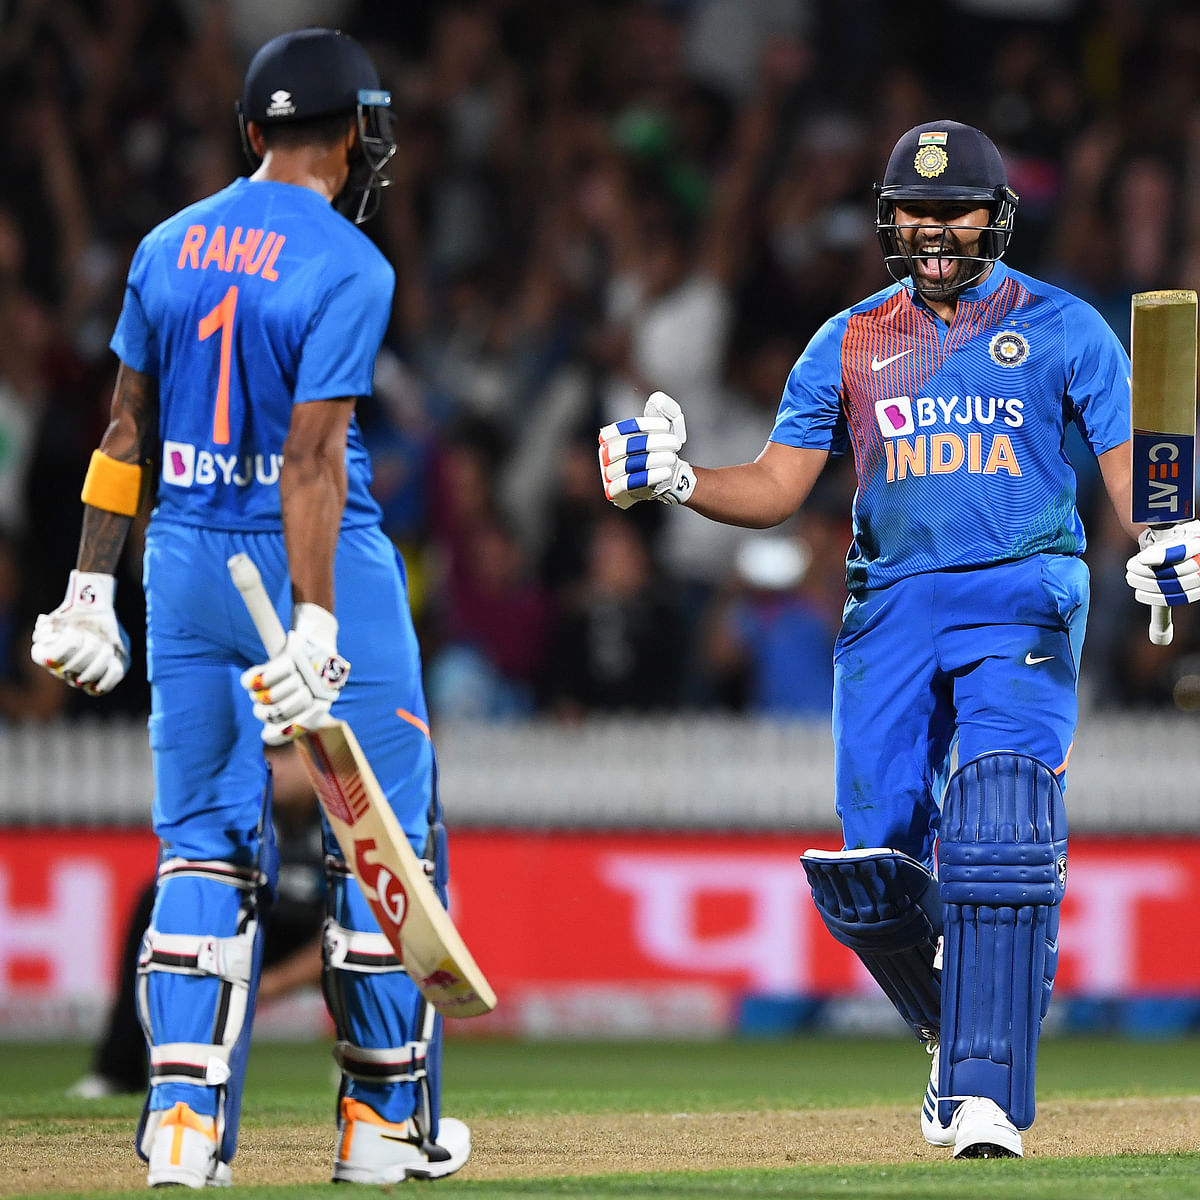 NZ vs IND 3rd T20I: Rohit Sharma slams 2 sixes in thrilling super over to seal series